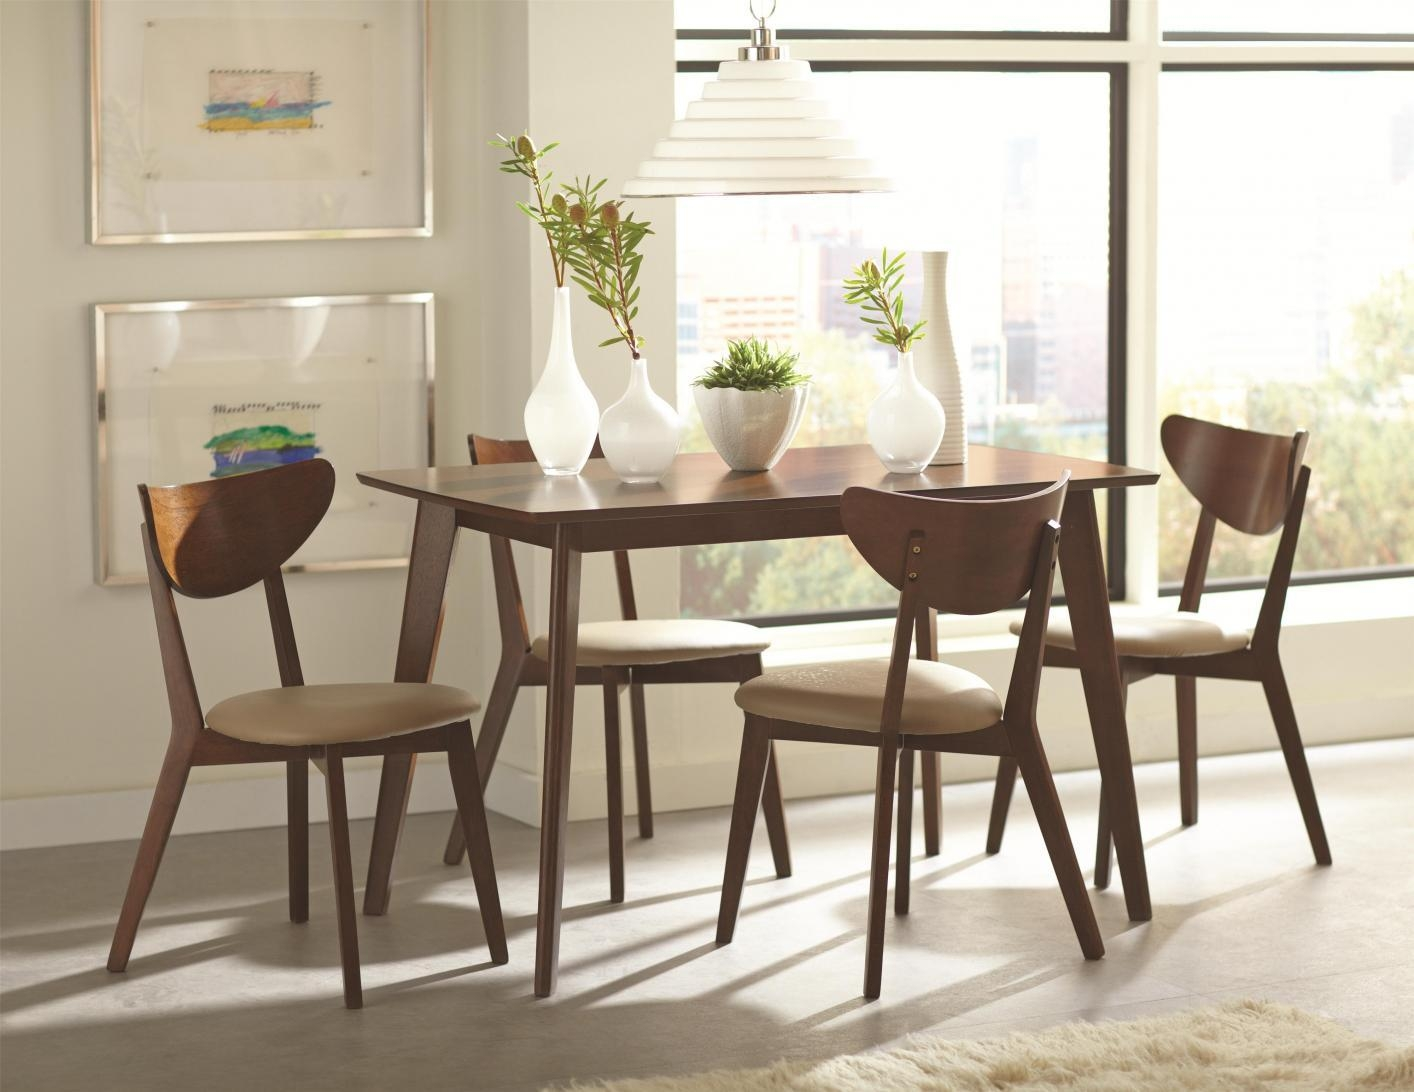 Brown Wood Dining Chair – Steal A Sofa Furniture Outlet Los Angeles Ca Intended For Dining Sofa Chairs (Image 7 of 20)